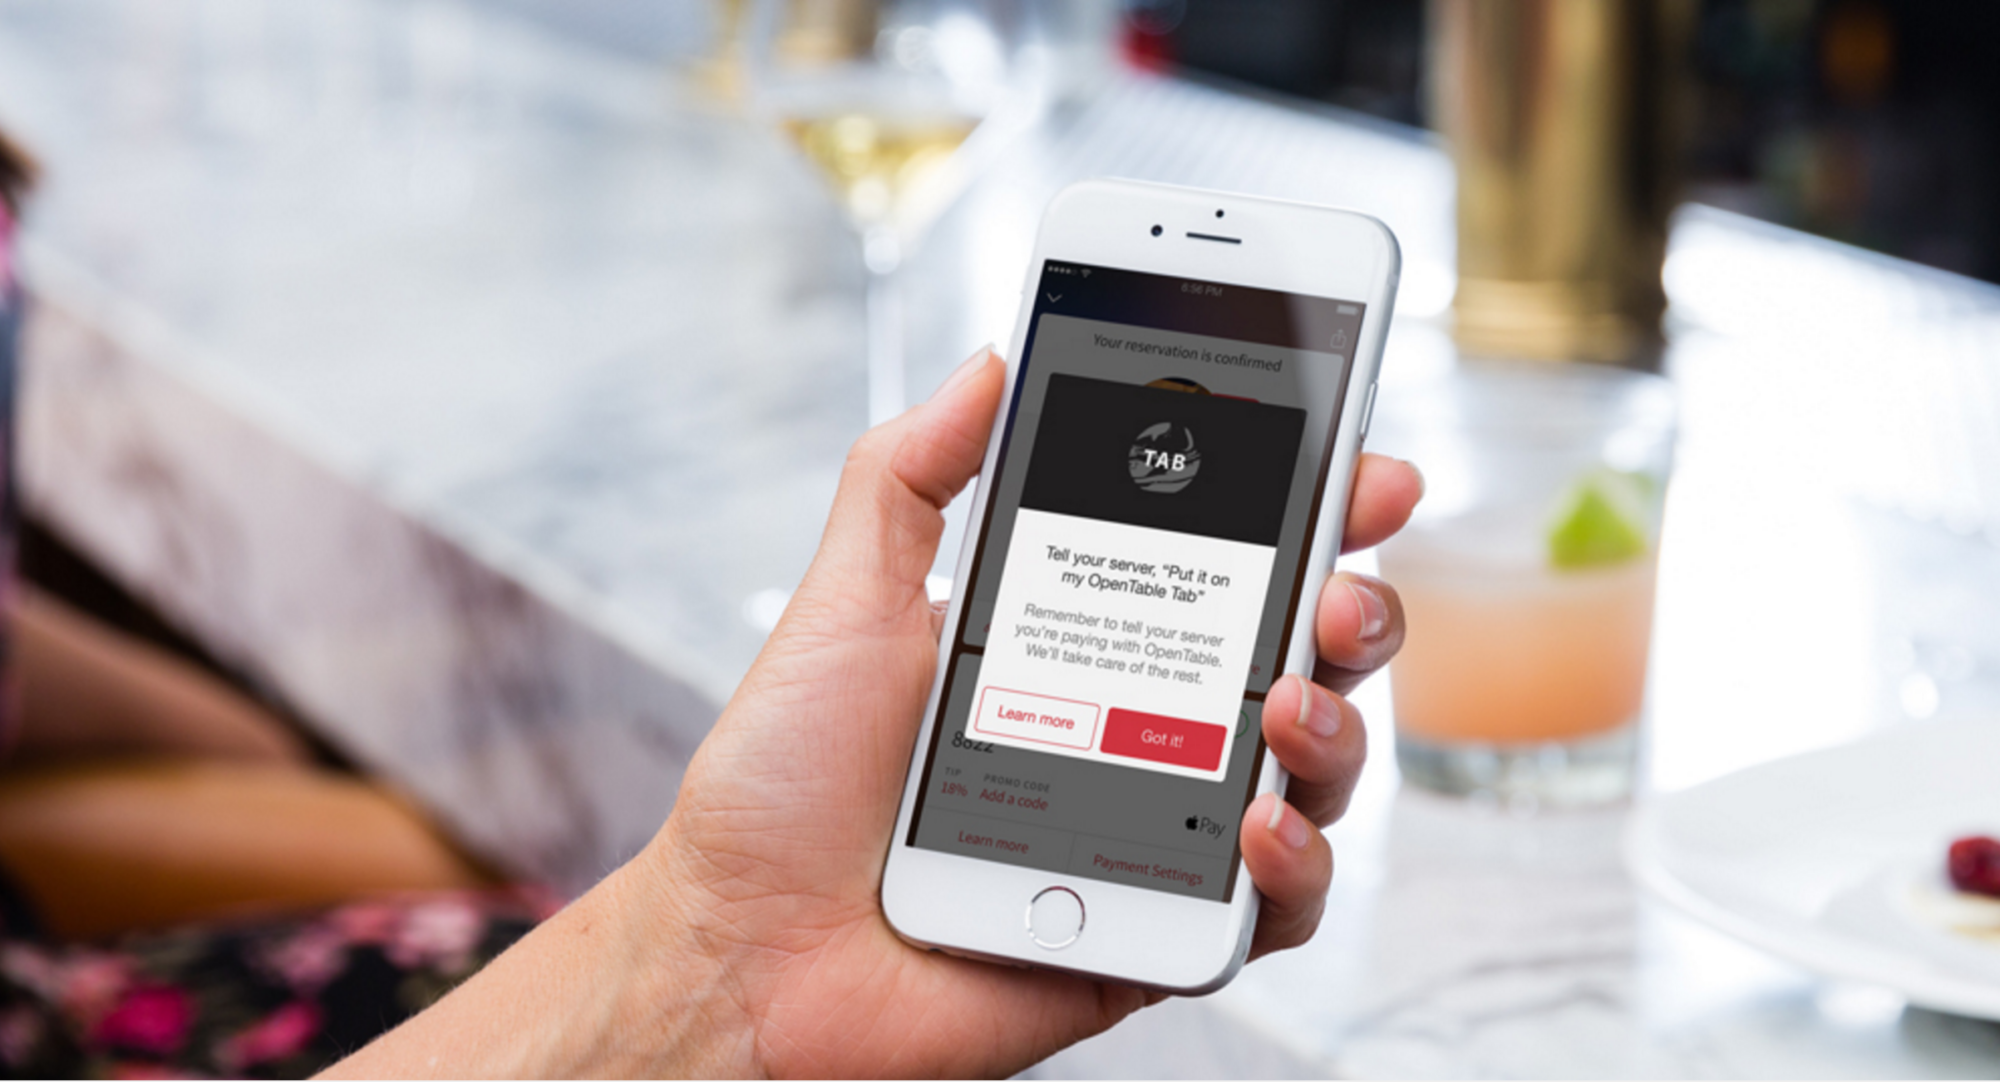 Restaurant reservation software, OpenTable allows users to add their bill to their tab on their personal profile to pay when they like and remove the need for physical transactions  image via OpenTable